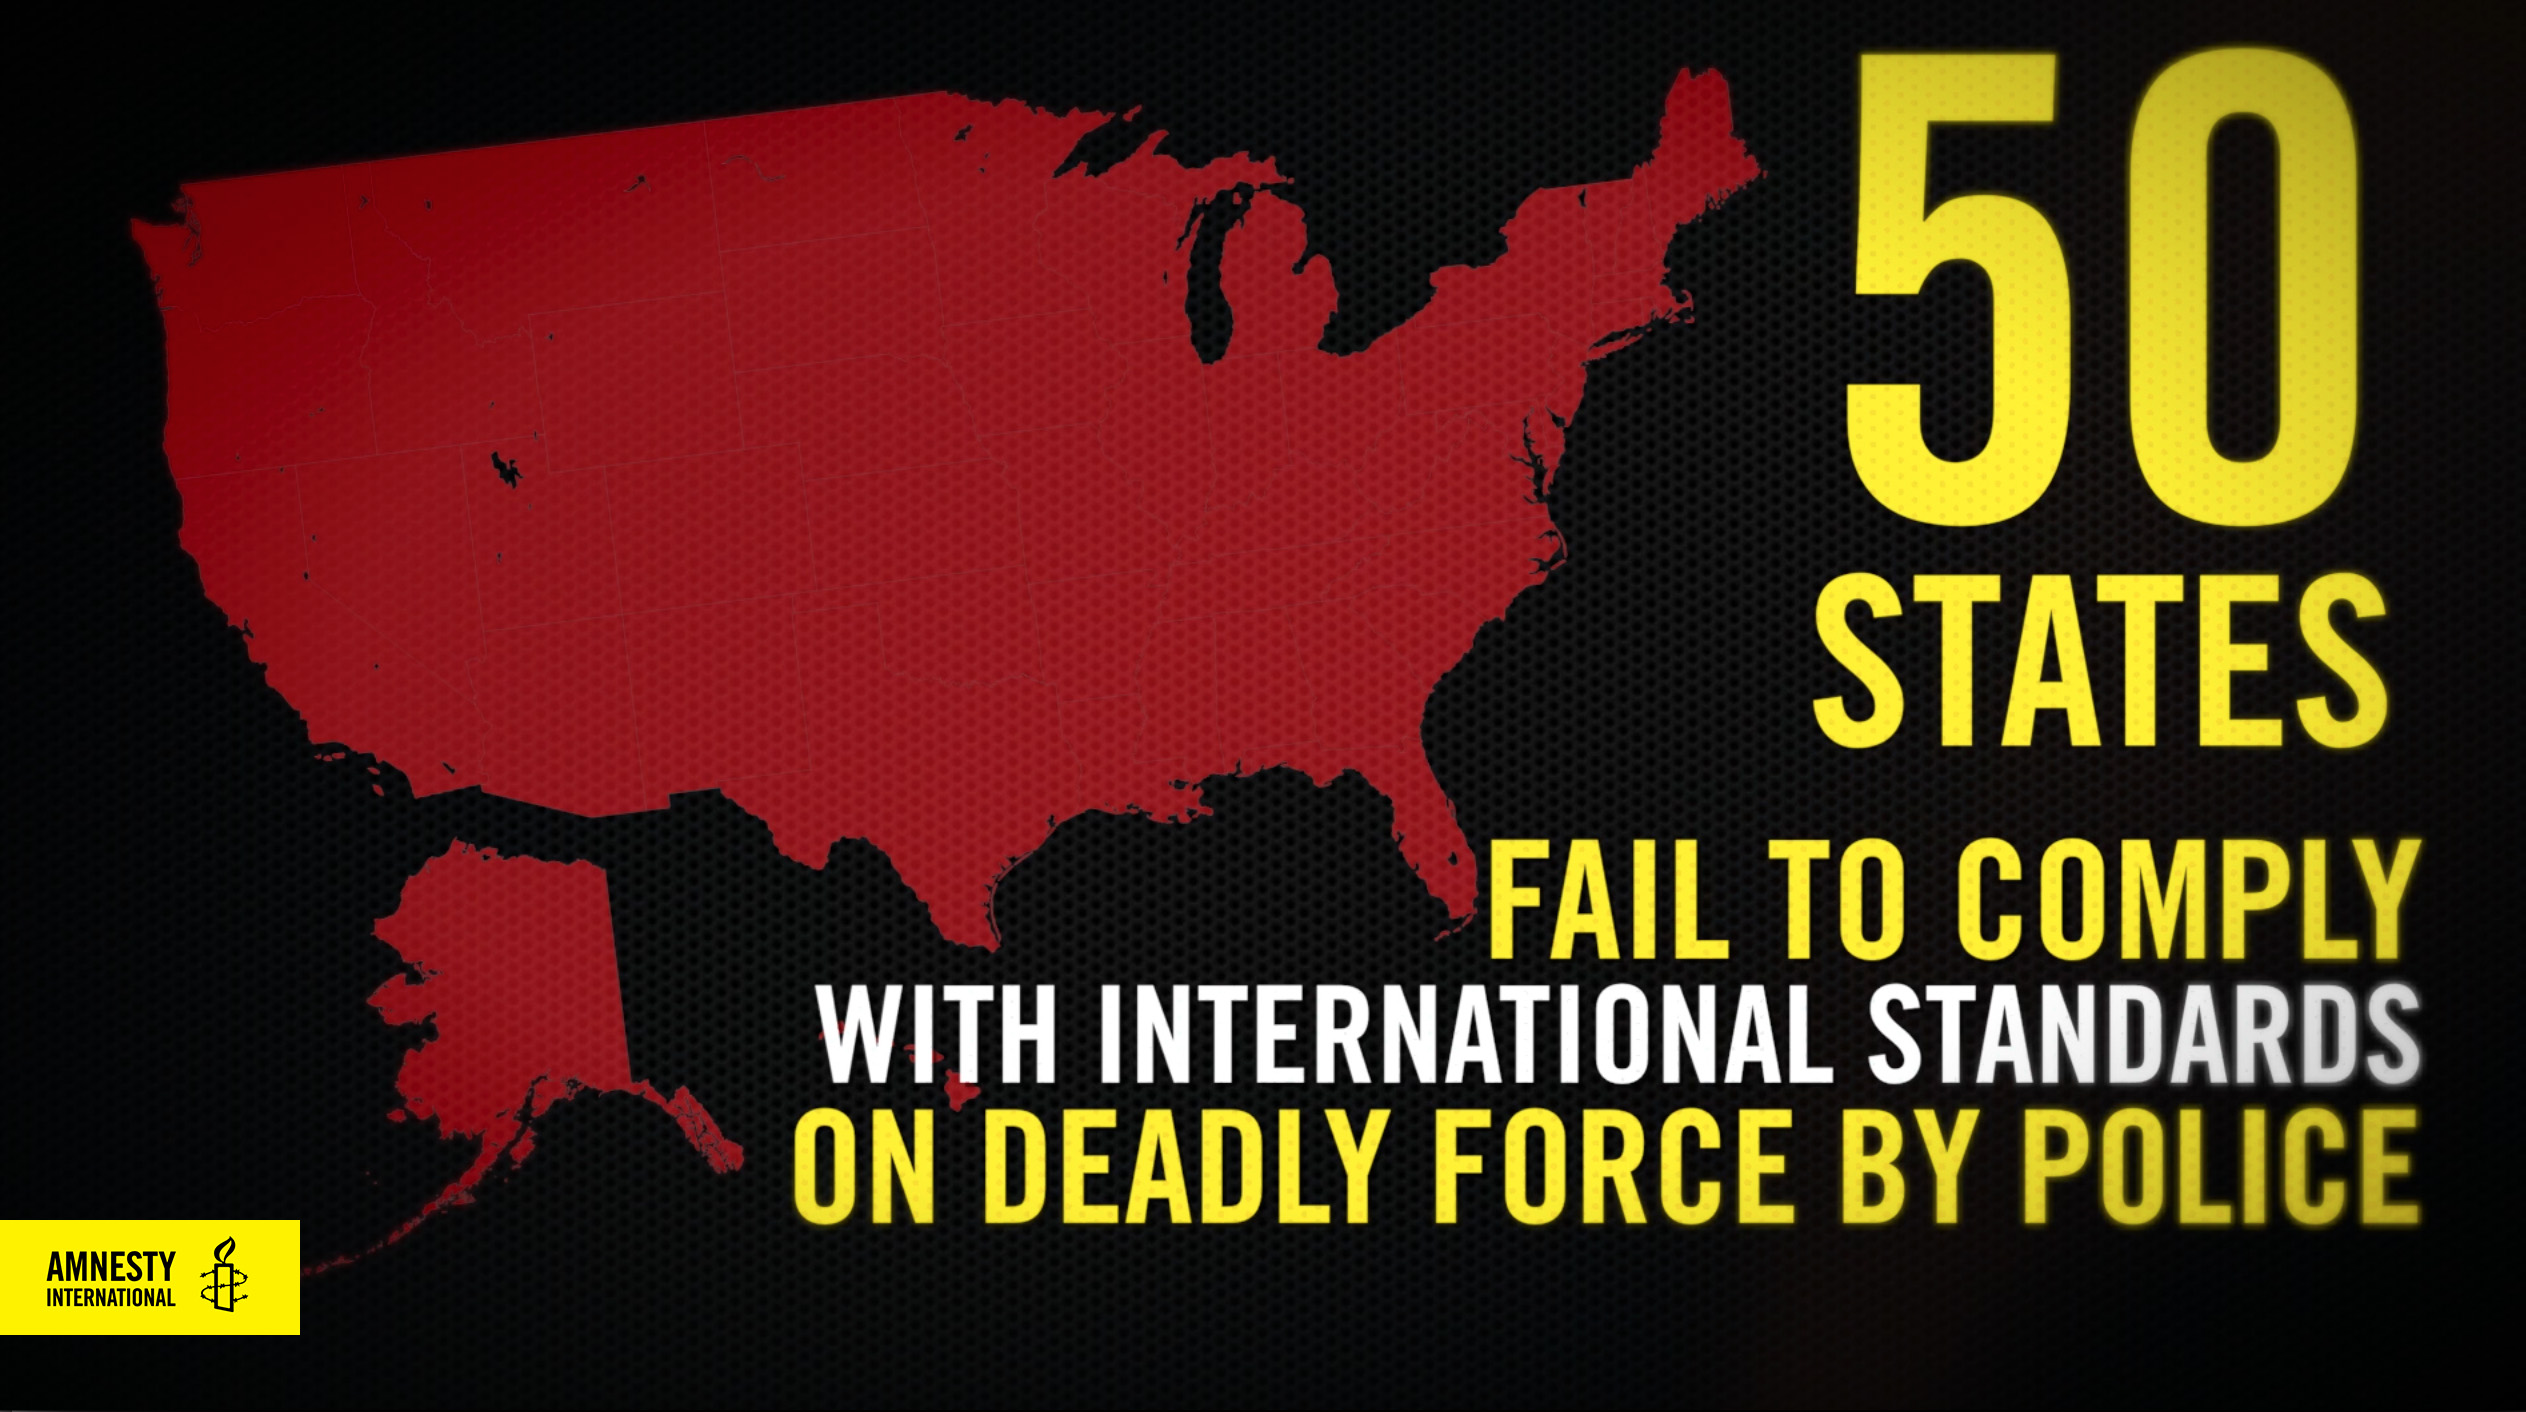 use of deadly force Preliminary data shed light on restraint in the use of deadly force by law enforcement officers.